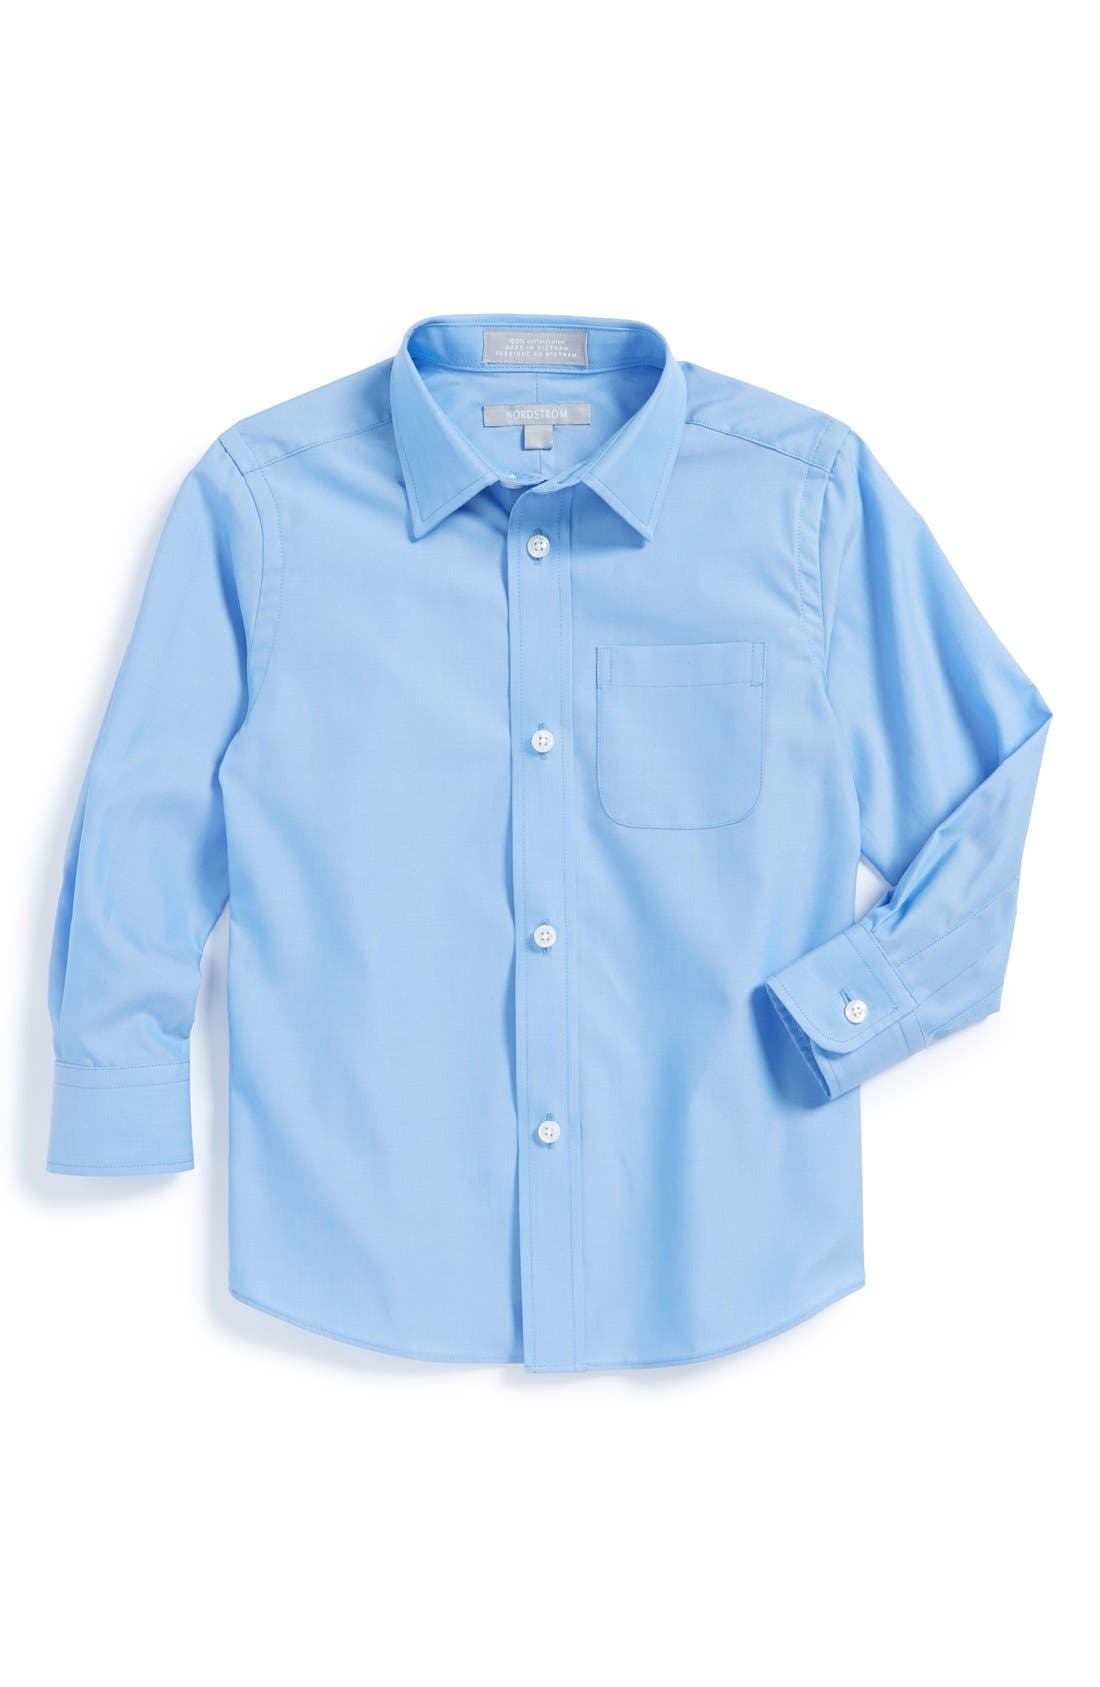 Cotton Poplin Dress Shirt,                         Main,                         color, Blue Smart